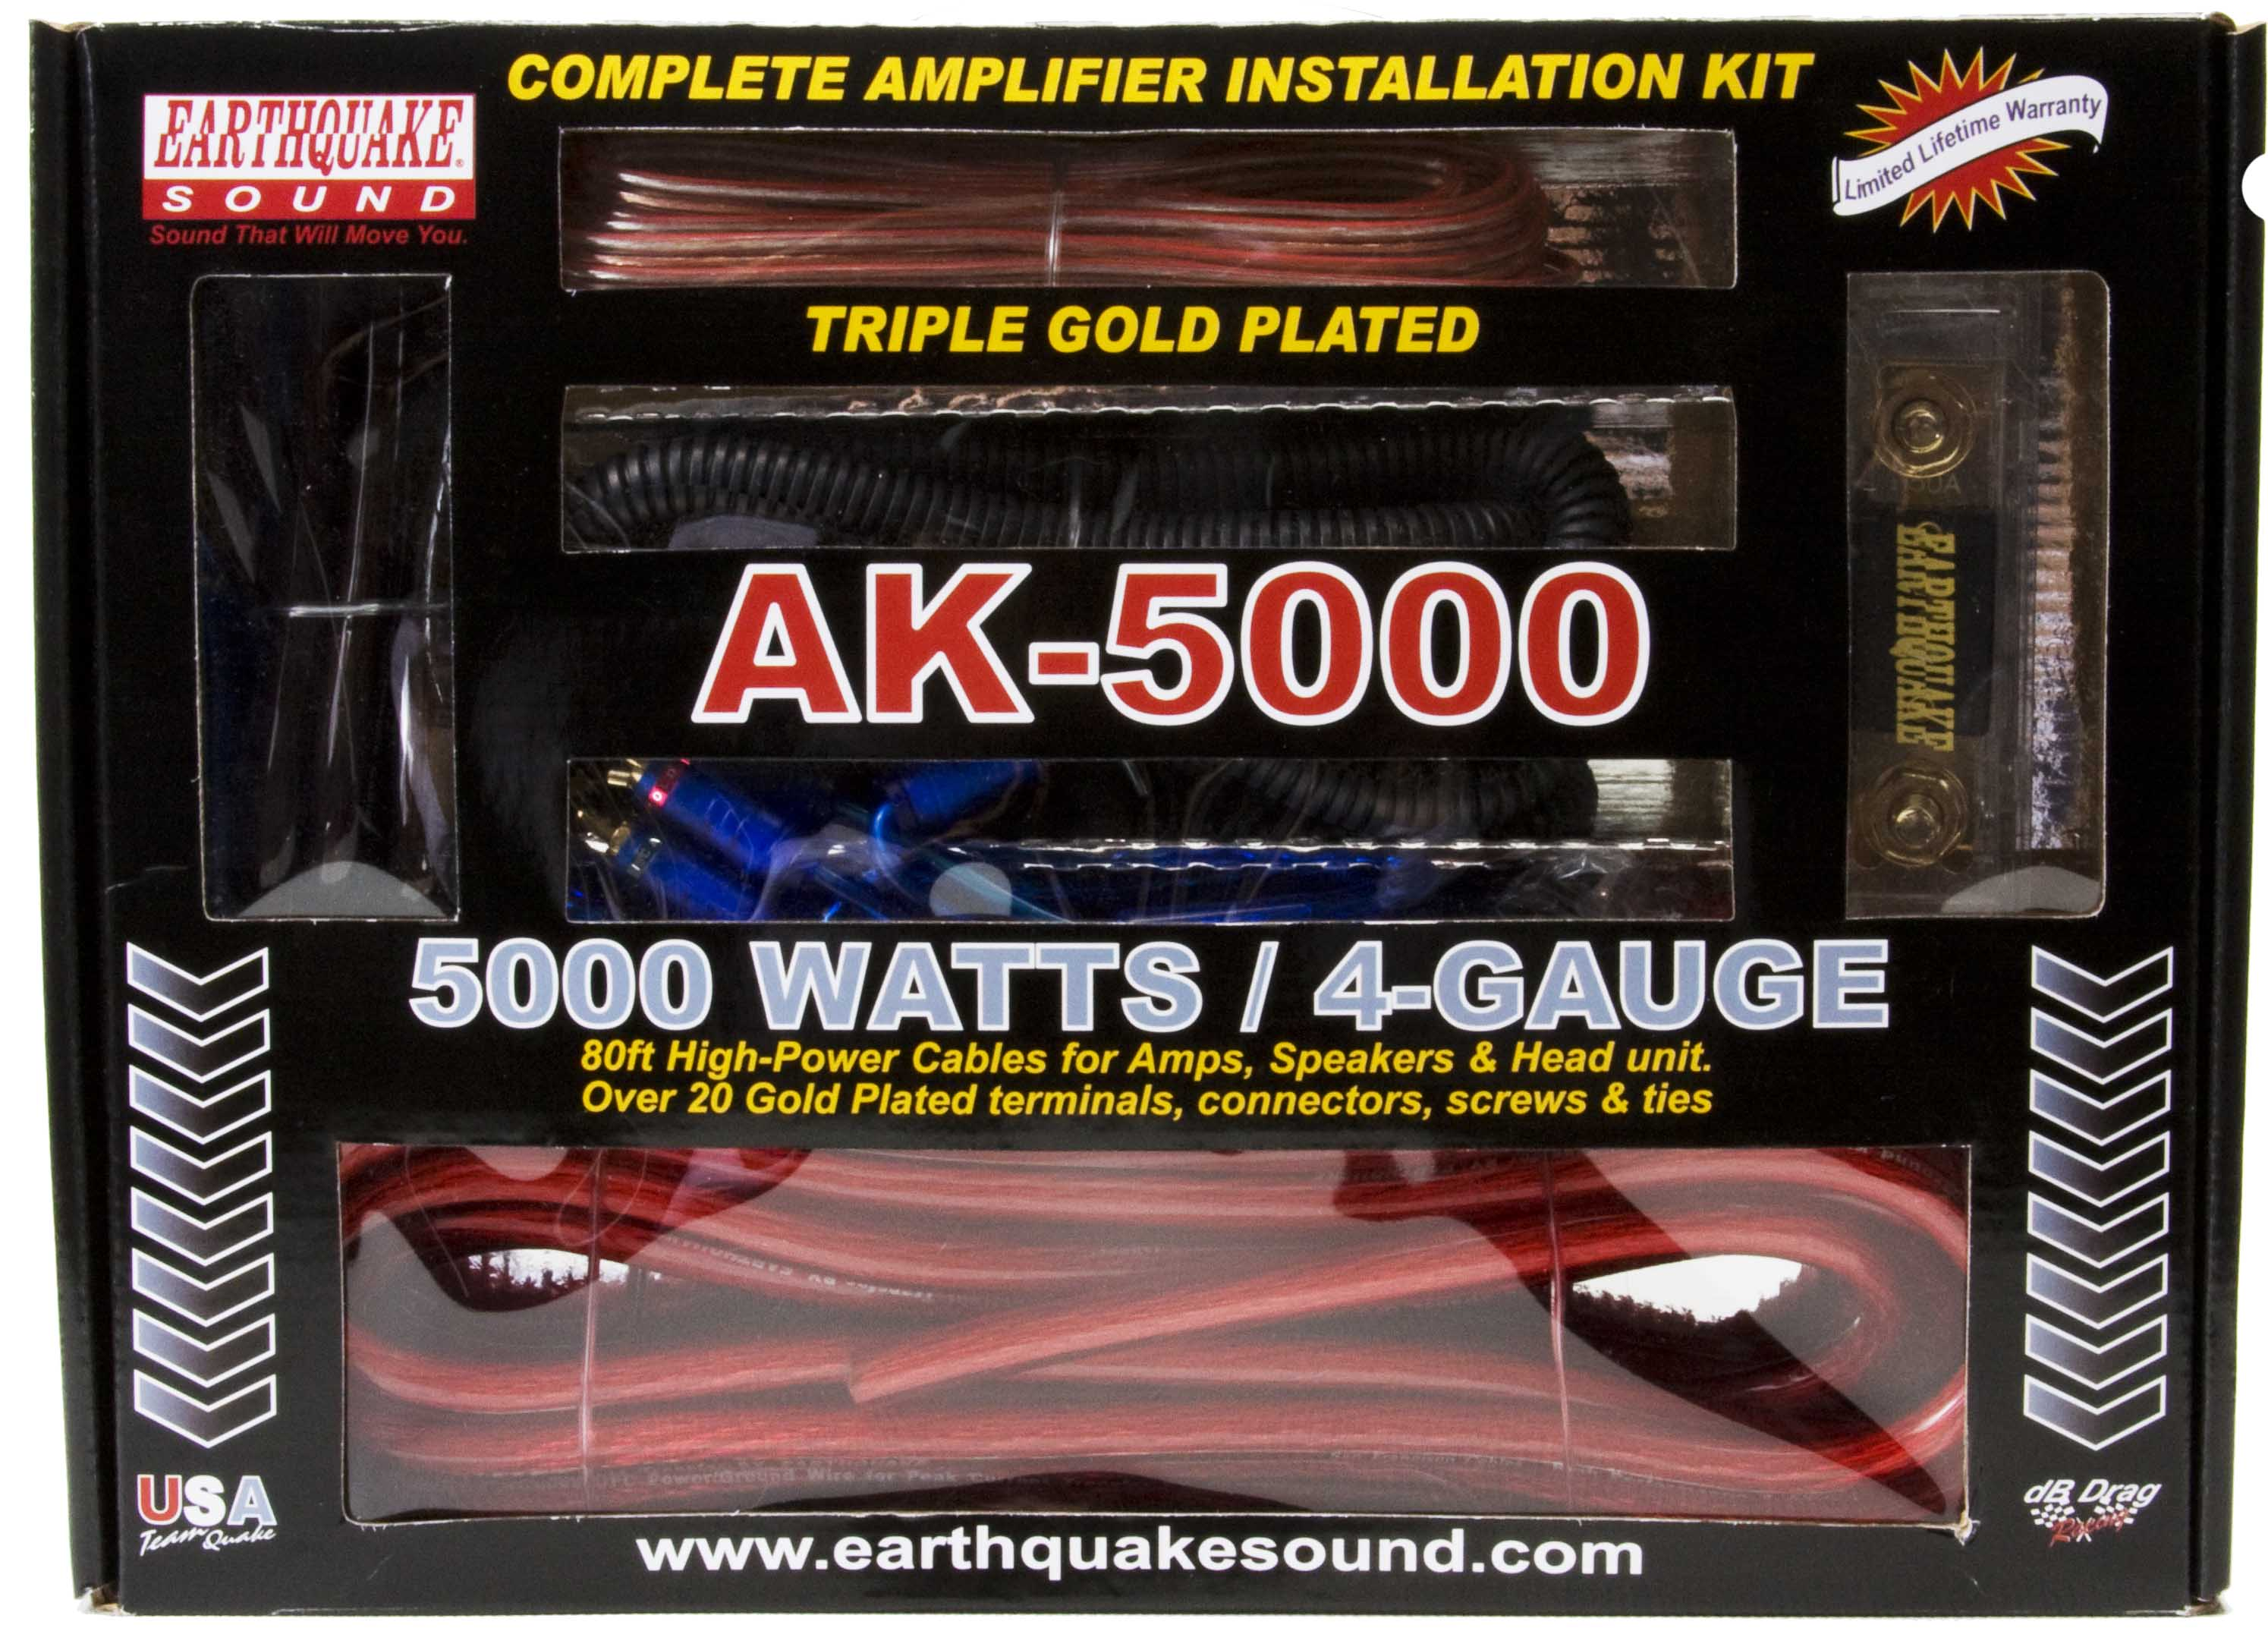 AK 5000 Installation Kit